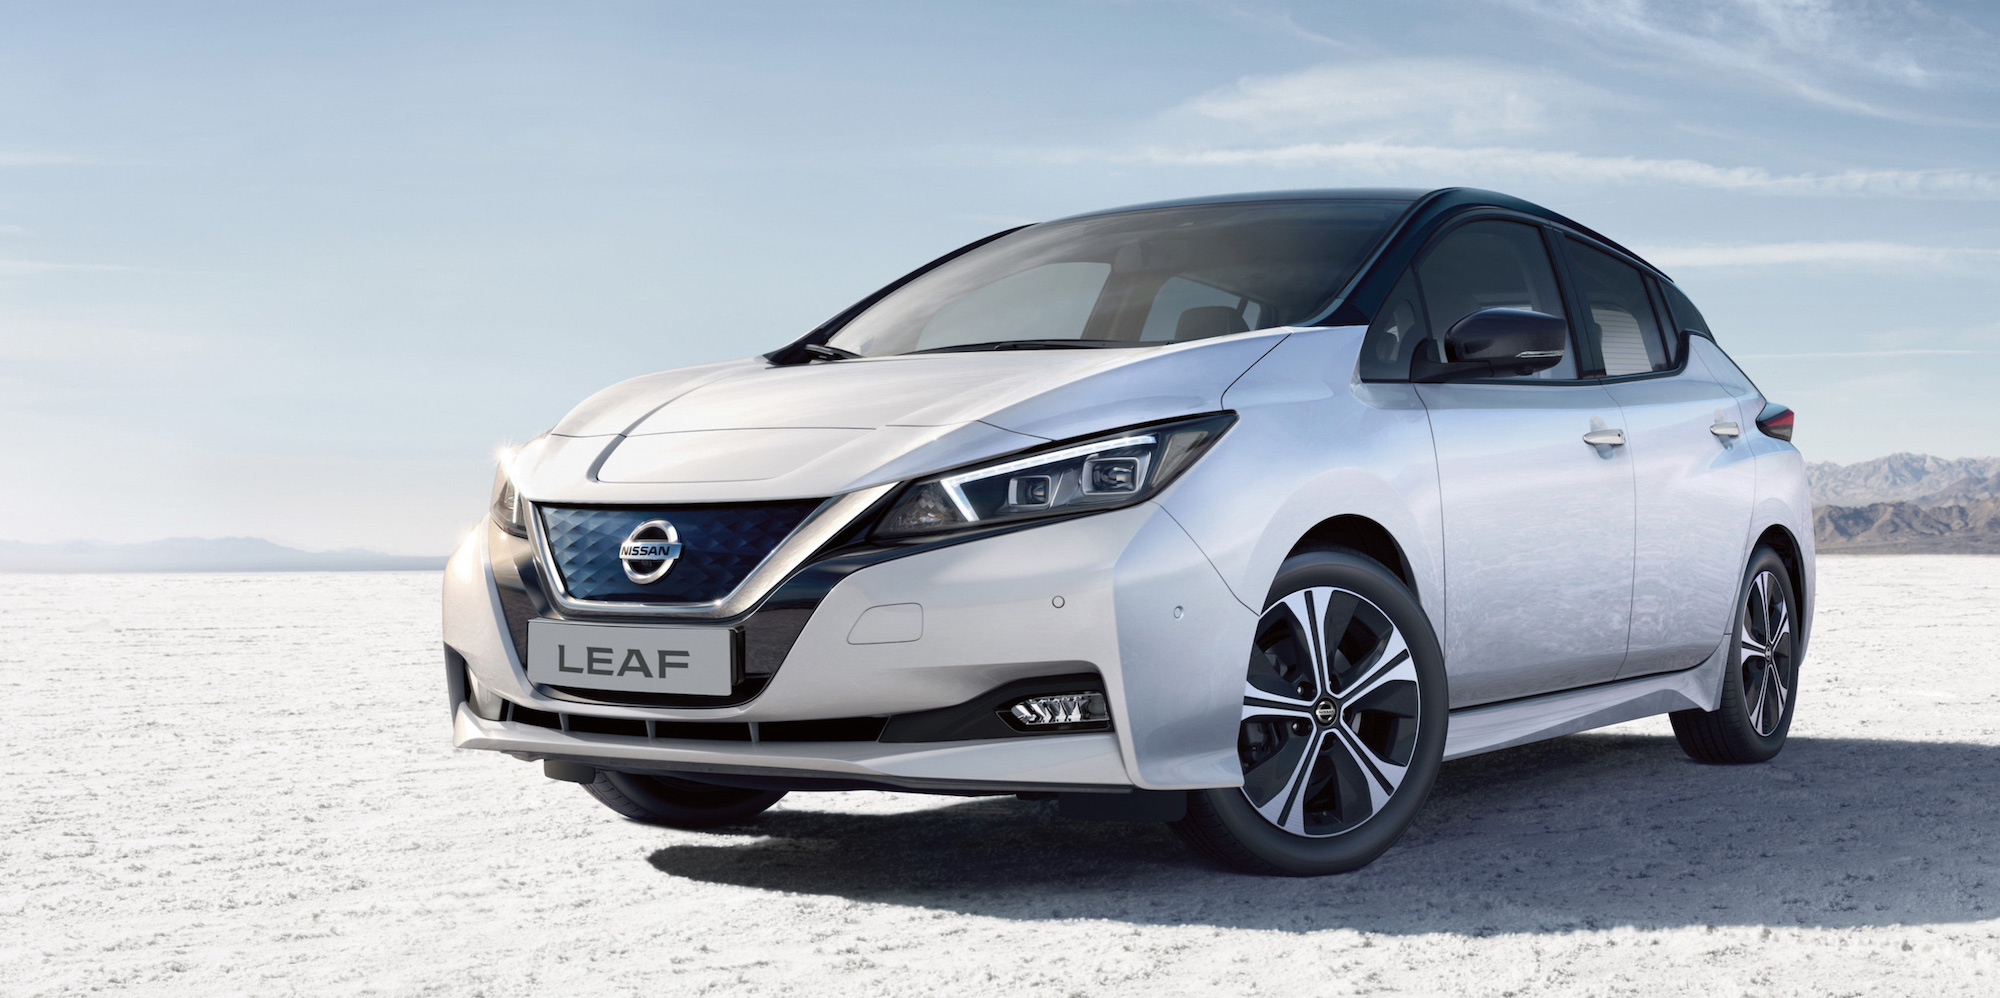 nissan-Leaf-hero-front-with-city-background